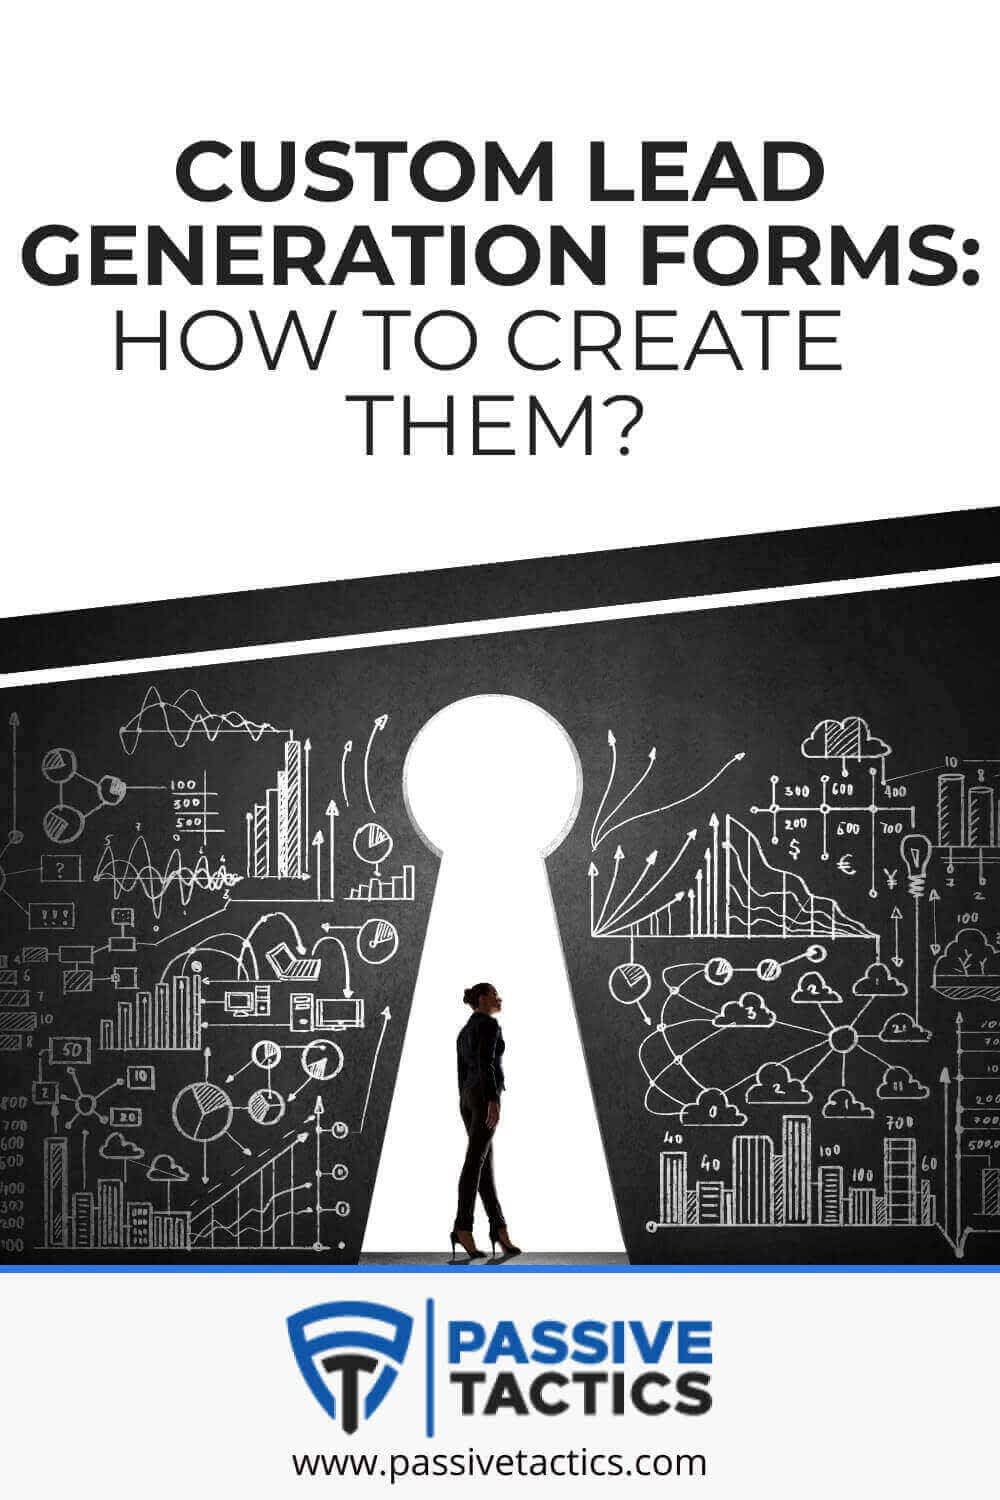 Custom Lead Generation Forms: How To Create Them?